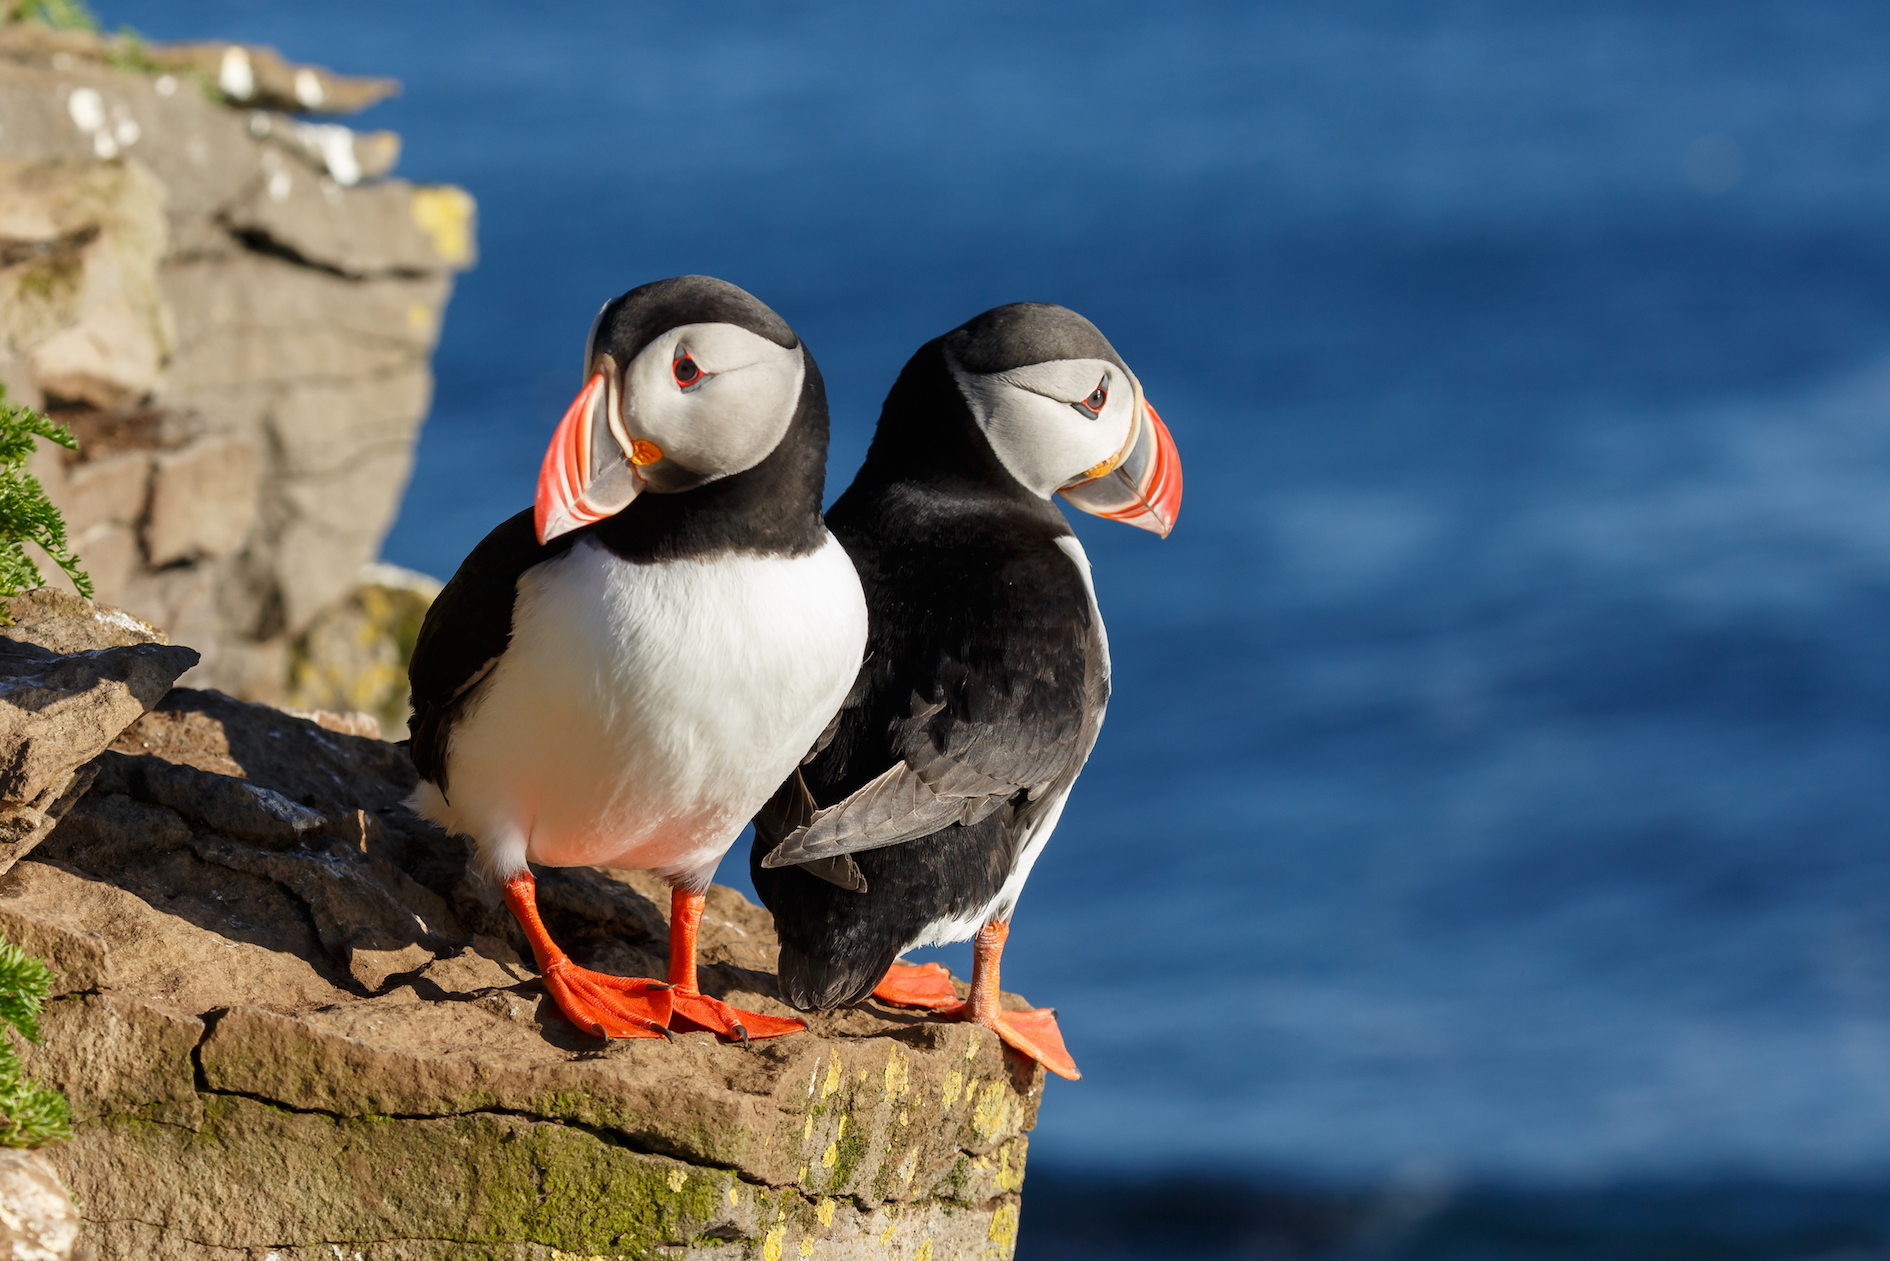 A new study has found that puffins who travel further distances during the winter are at a disadvantage for breeding the following spring.